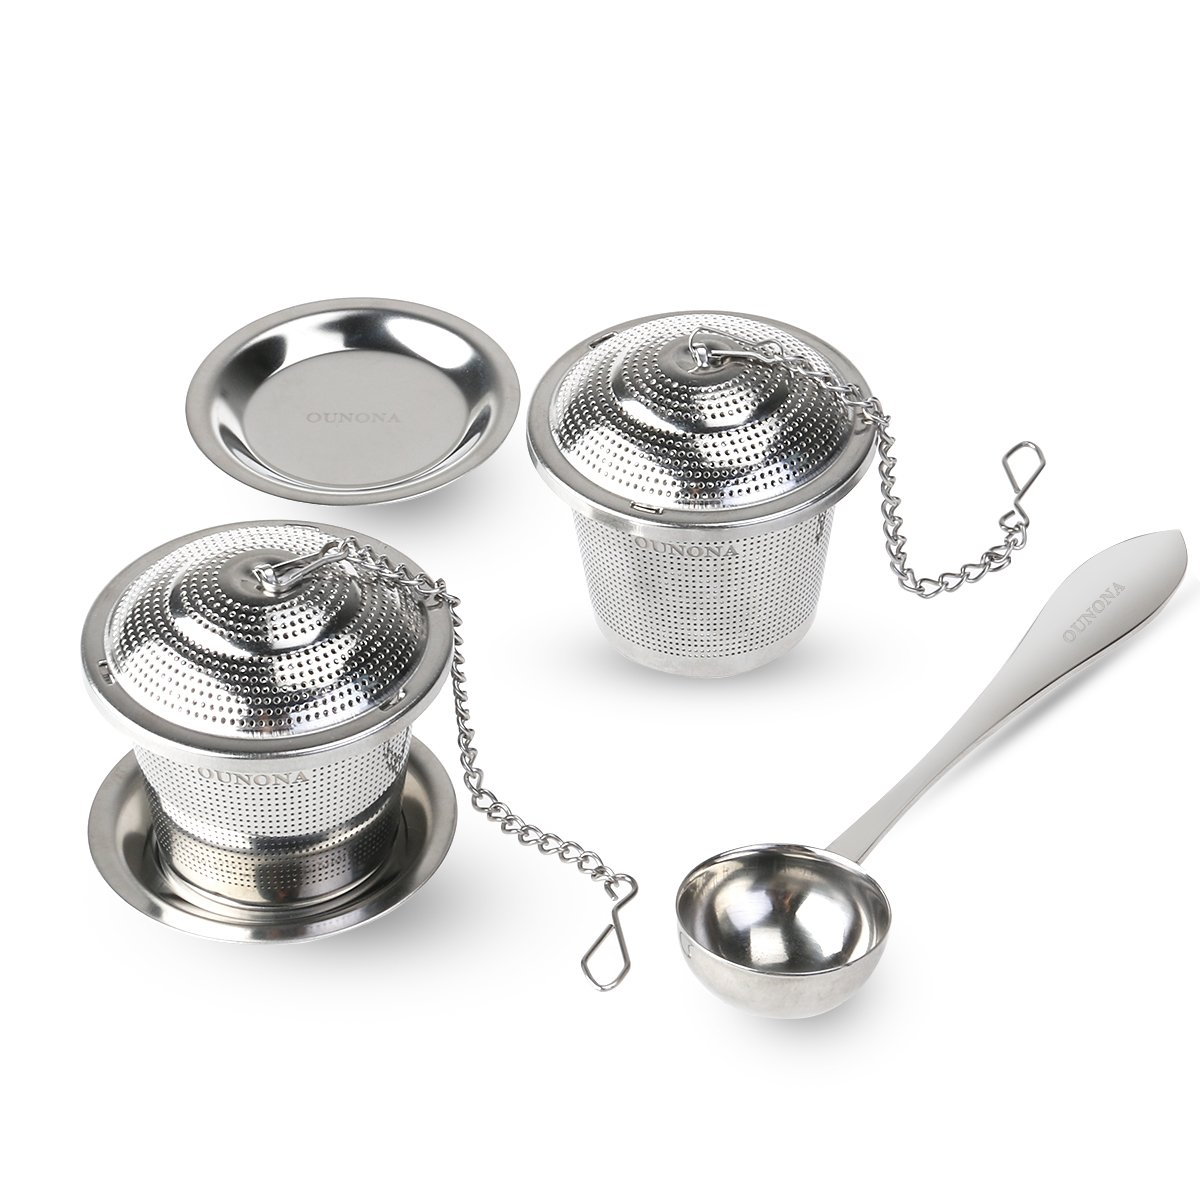 OUNONA 2pcs Tea Strainer Tea Infuser 304 Stainless Steel Tea Steeper with Tea Scoop and Drip Trays